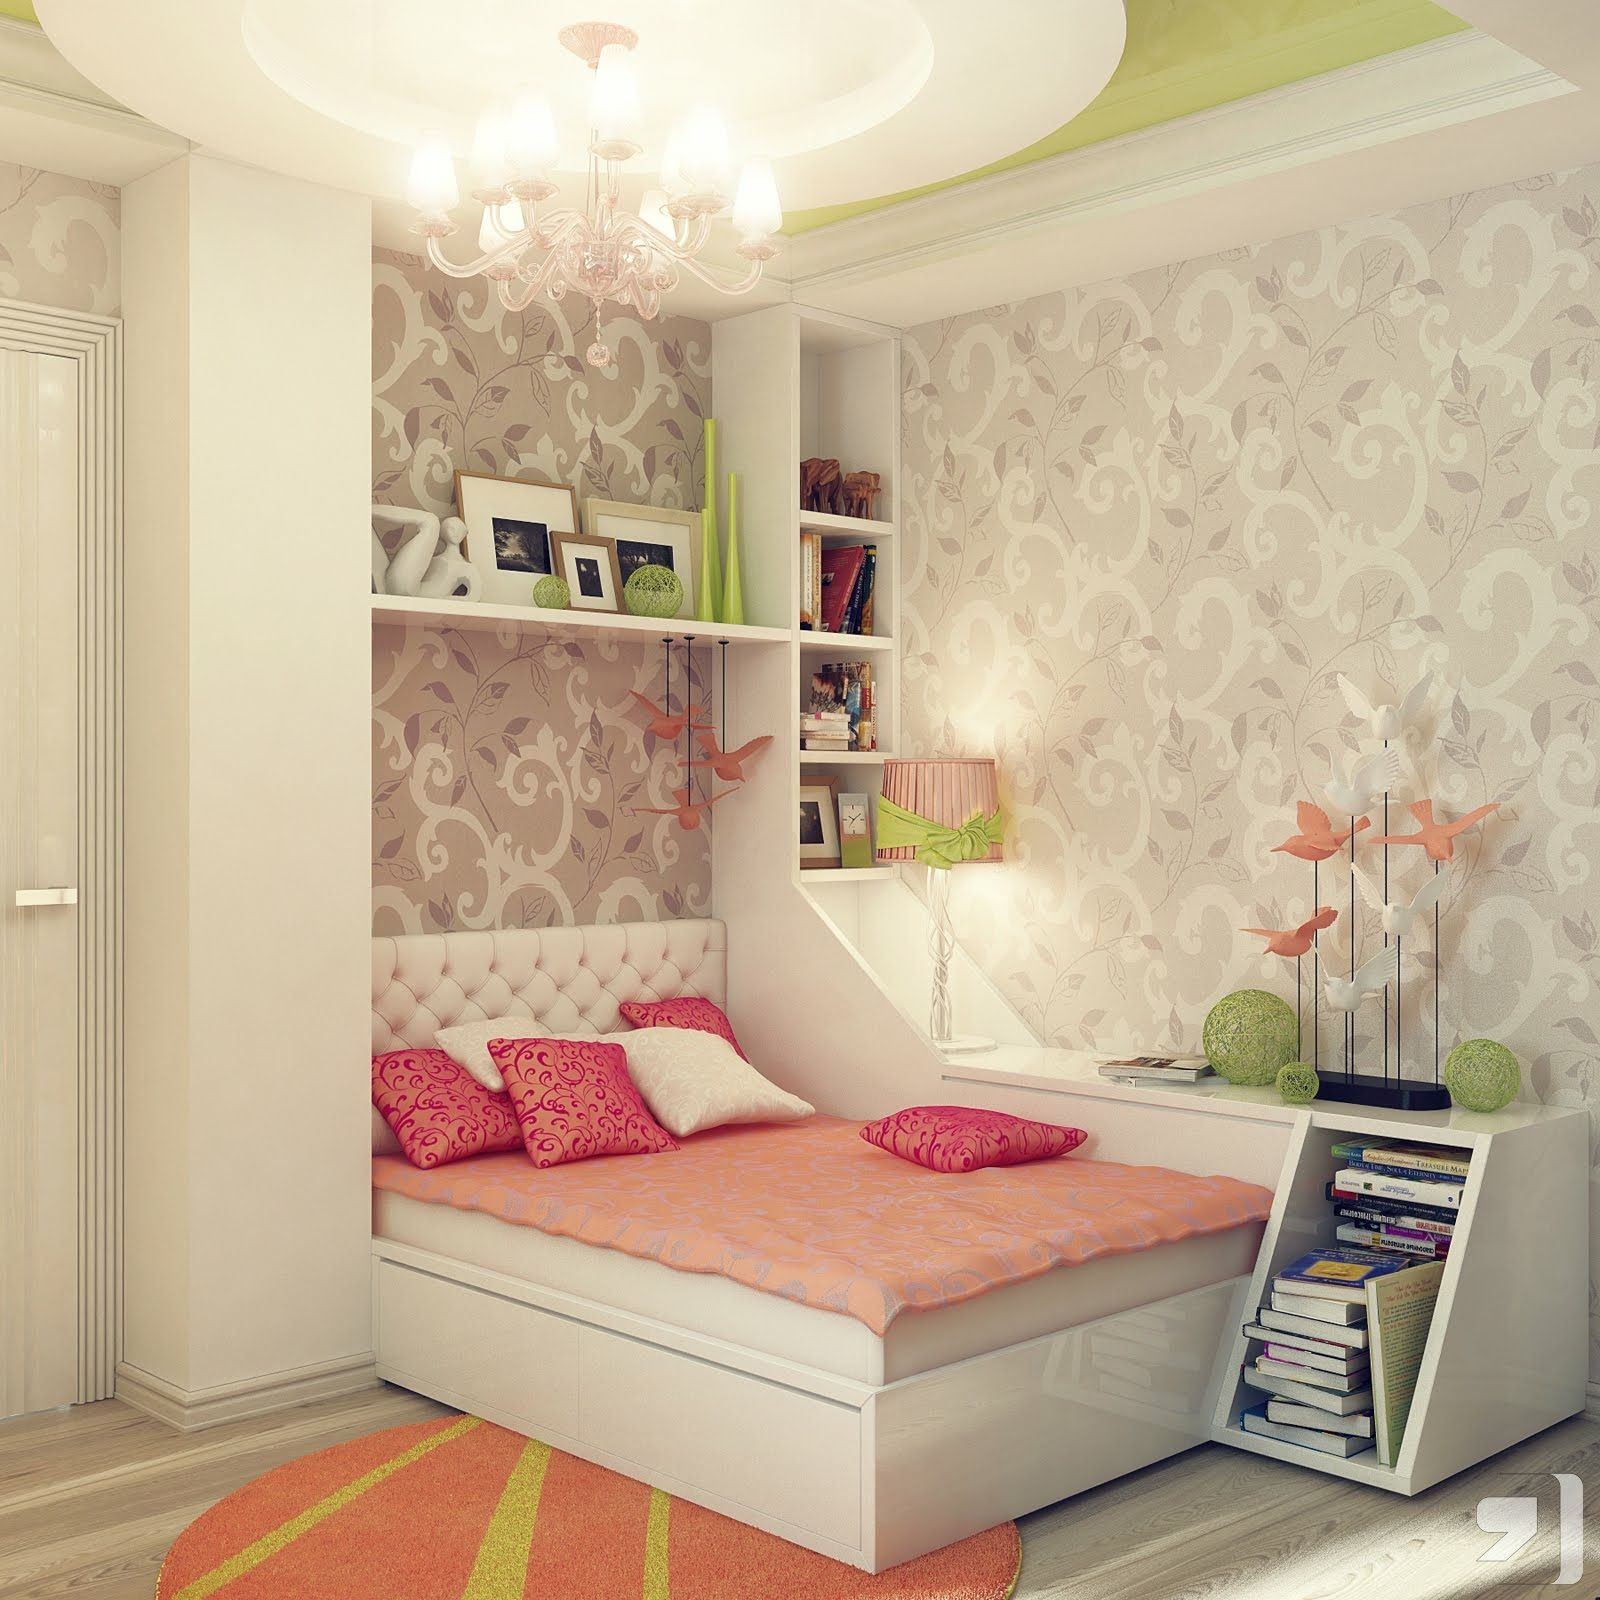 Teen room decorating ideas apple green offset the sweet candyfloss shades elsewhere